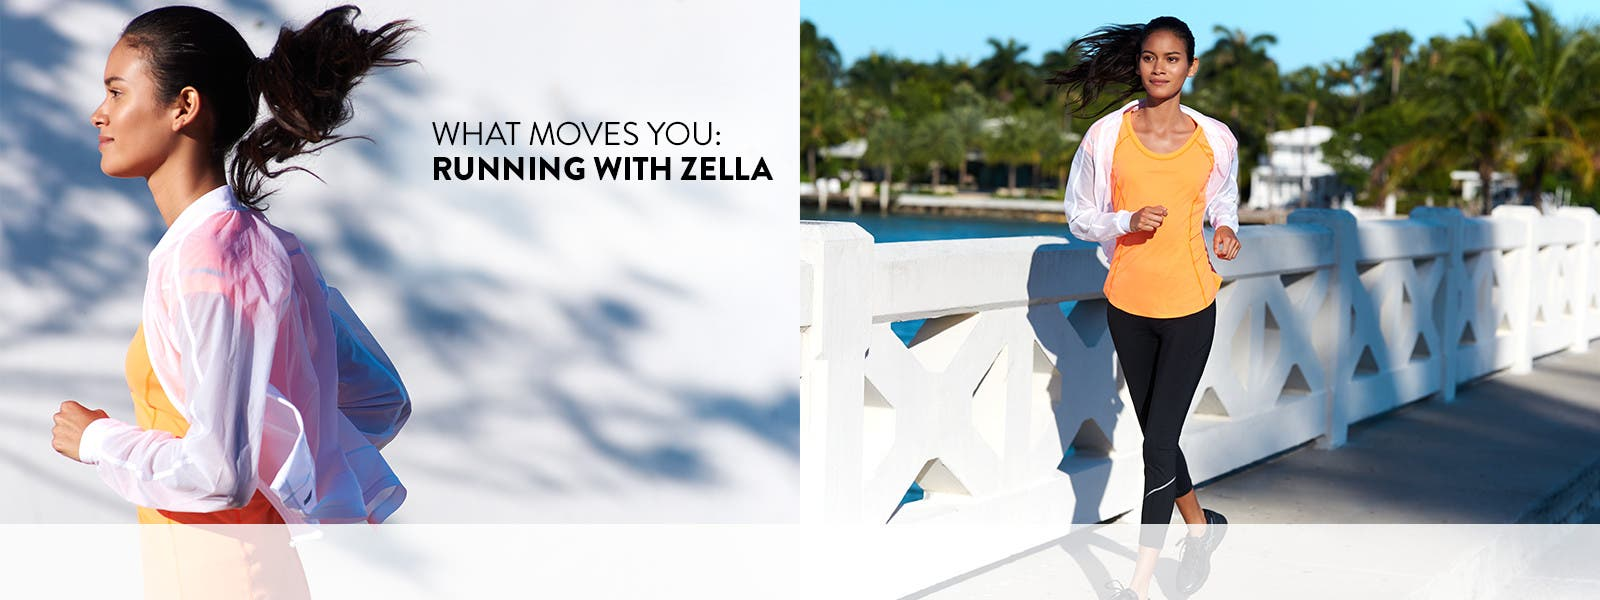 What moves you: Zella running activewear.